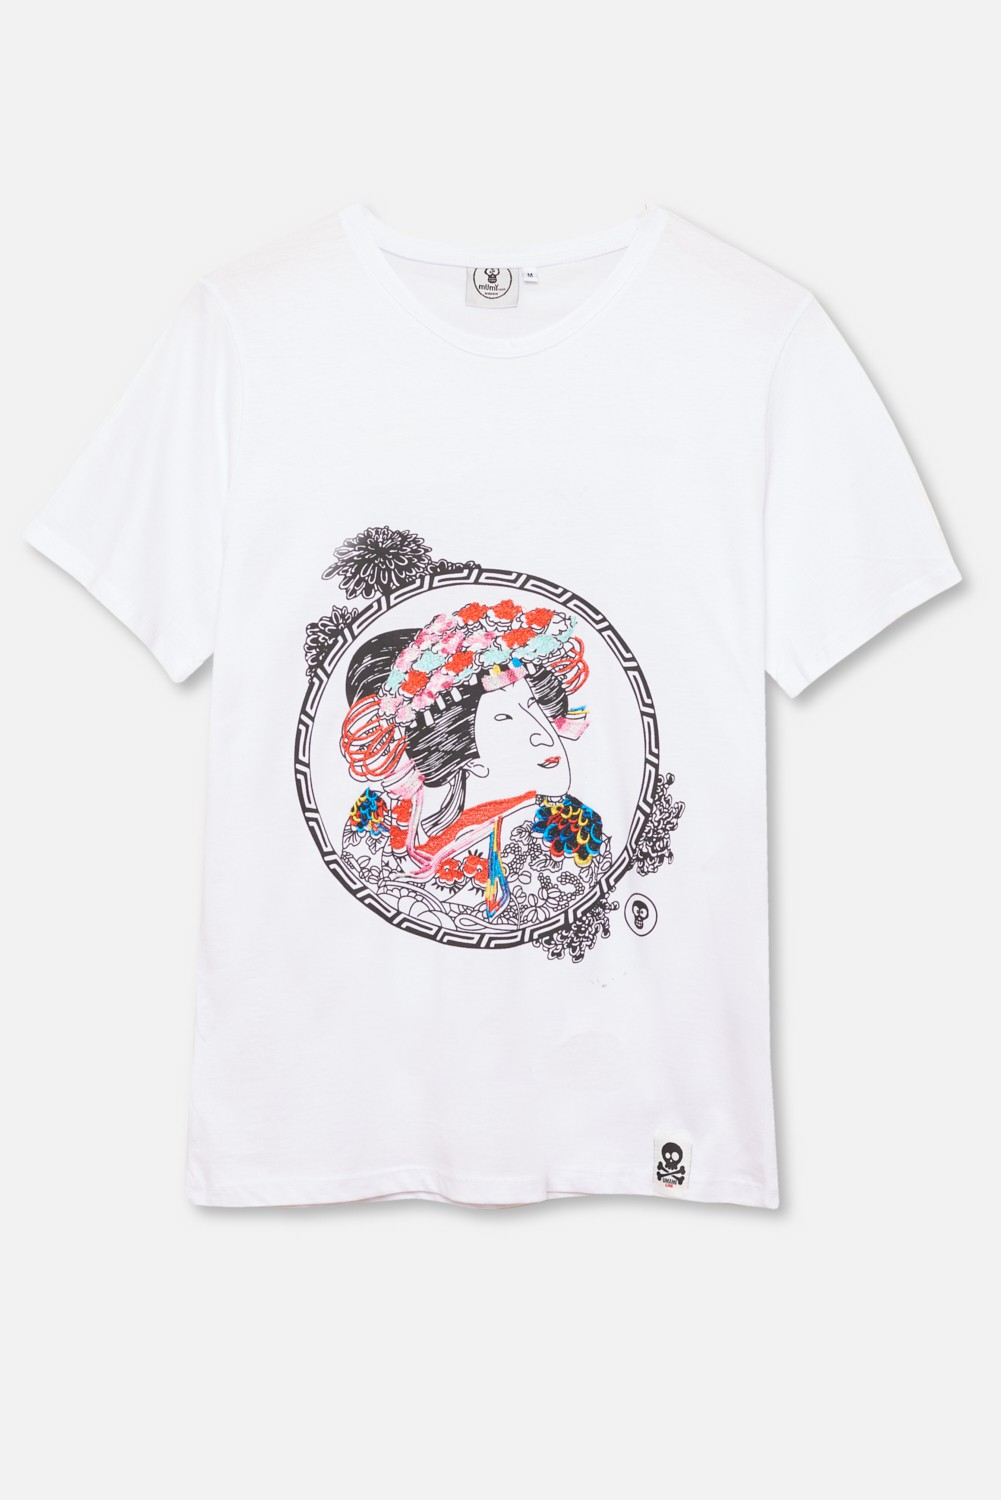 ADULT´S EMBROIDERED T-SHIRT UMAMI LINE FLOWERED GEISHA